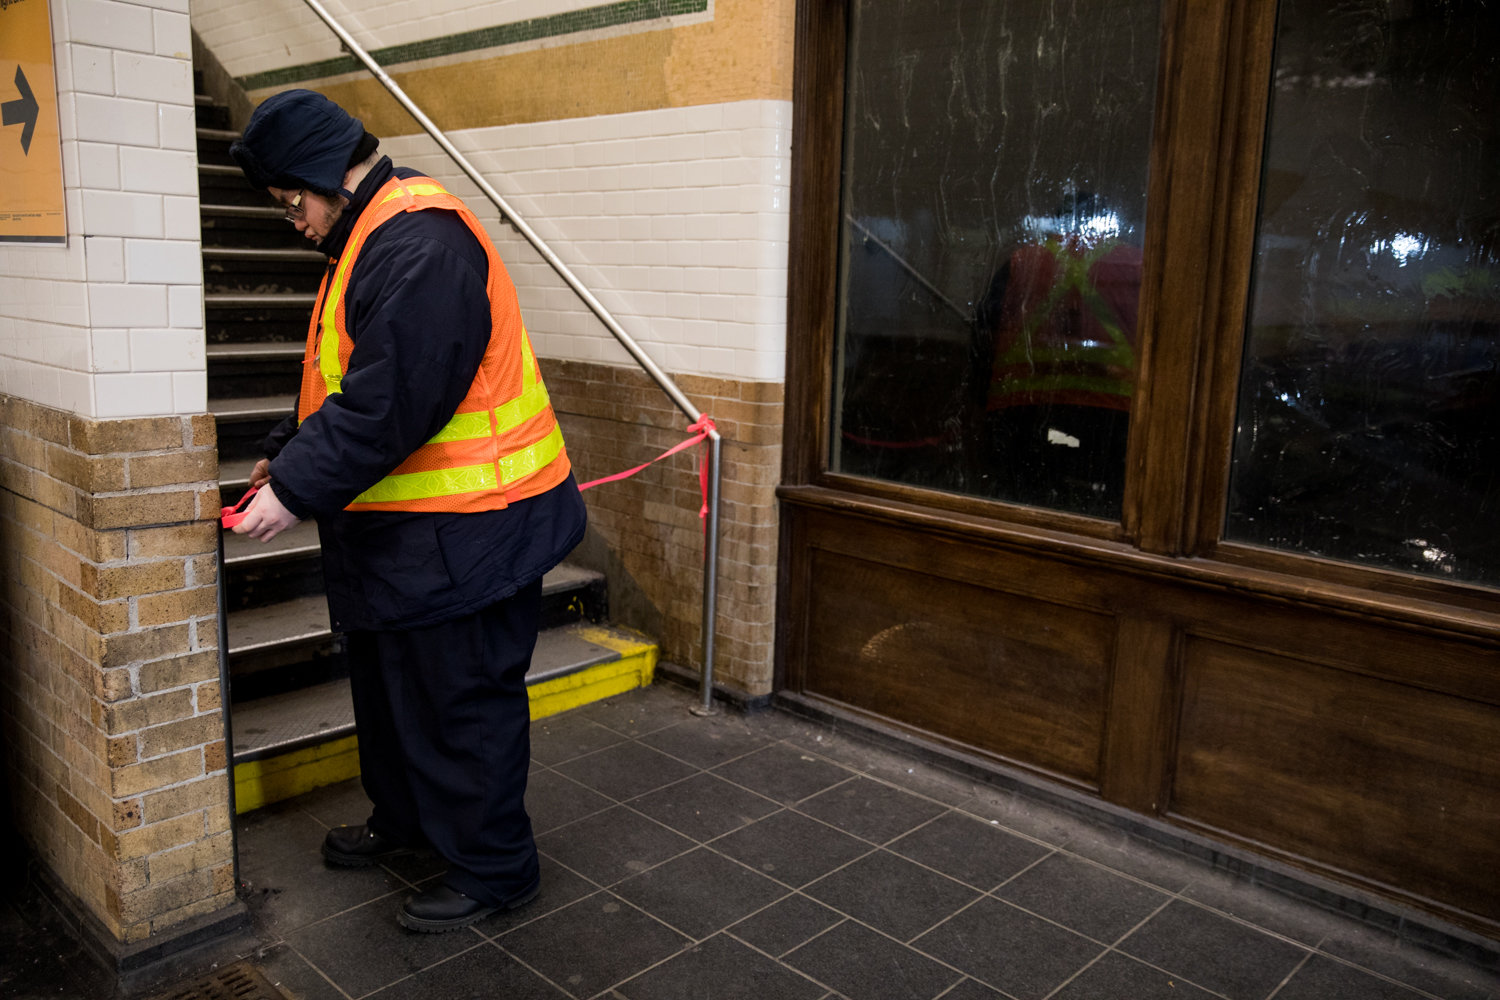 An MTA worker affixes red tape to the stairs leading up to the downtown platform at the Dyckman Street 1 train station after service is suspended between there and 137th Street.